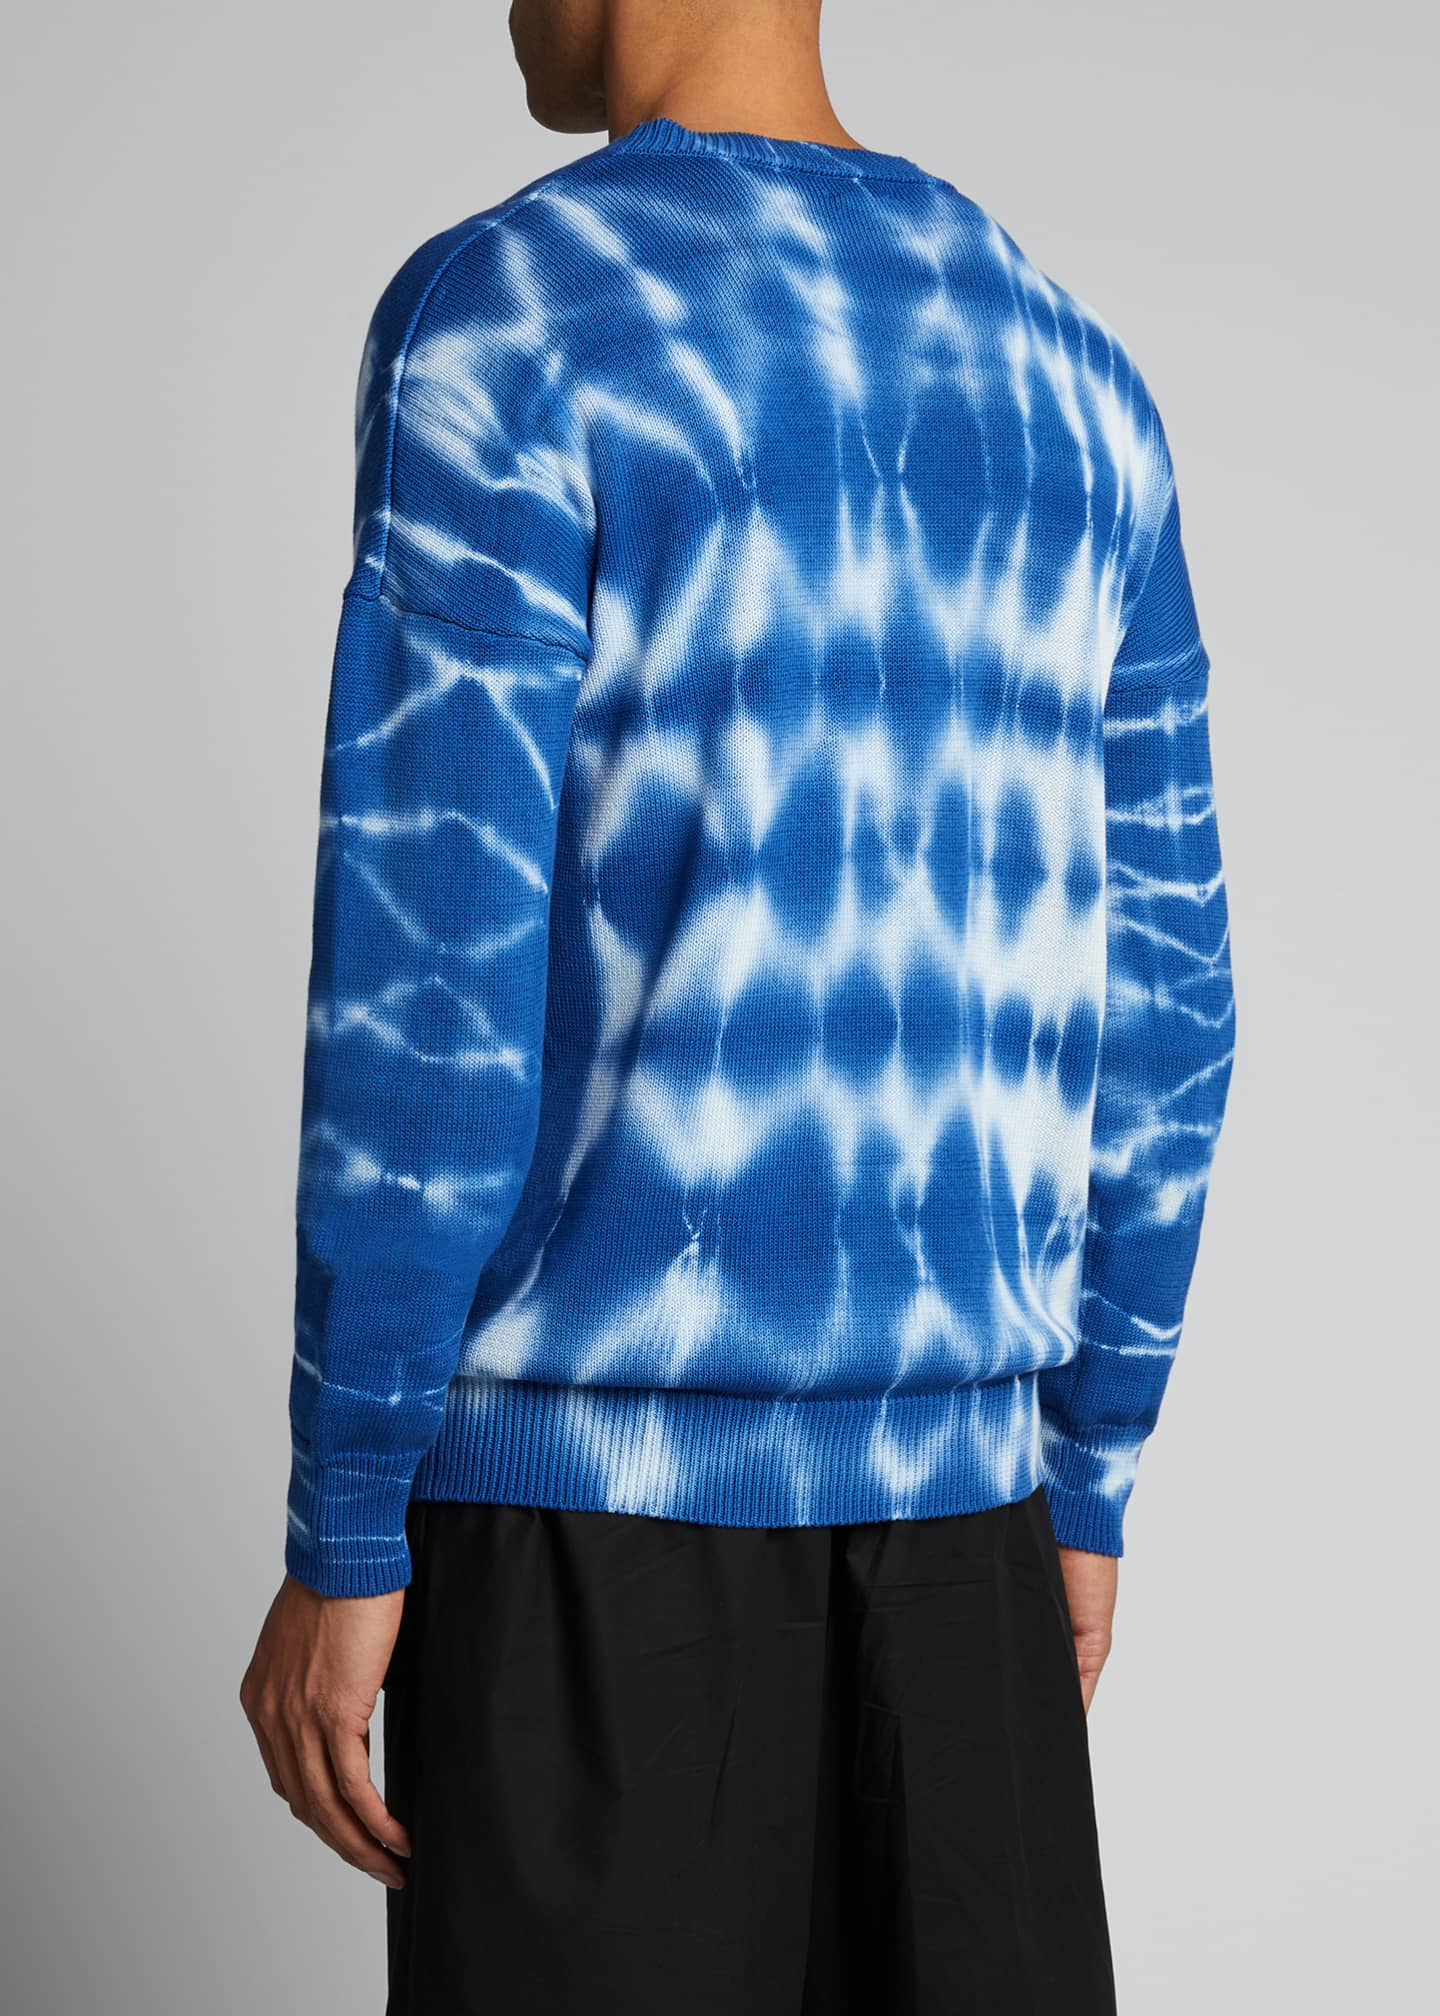 Image 2 of 5: Men's Tie-Dye Crewneck Sweater